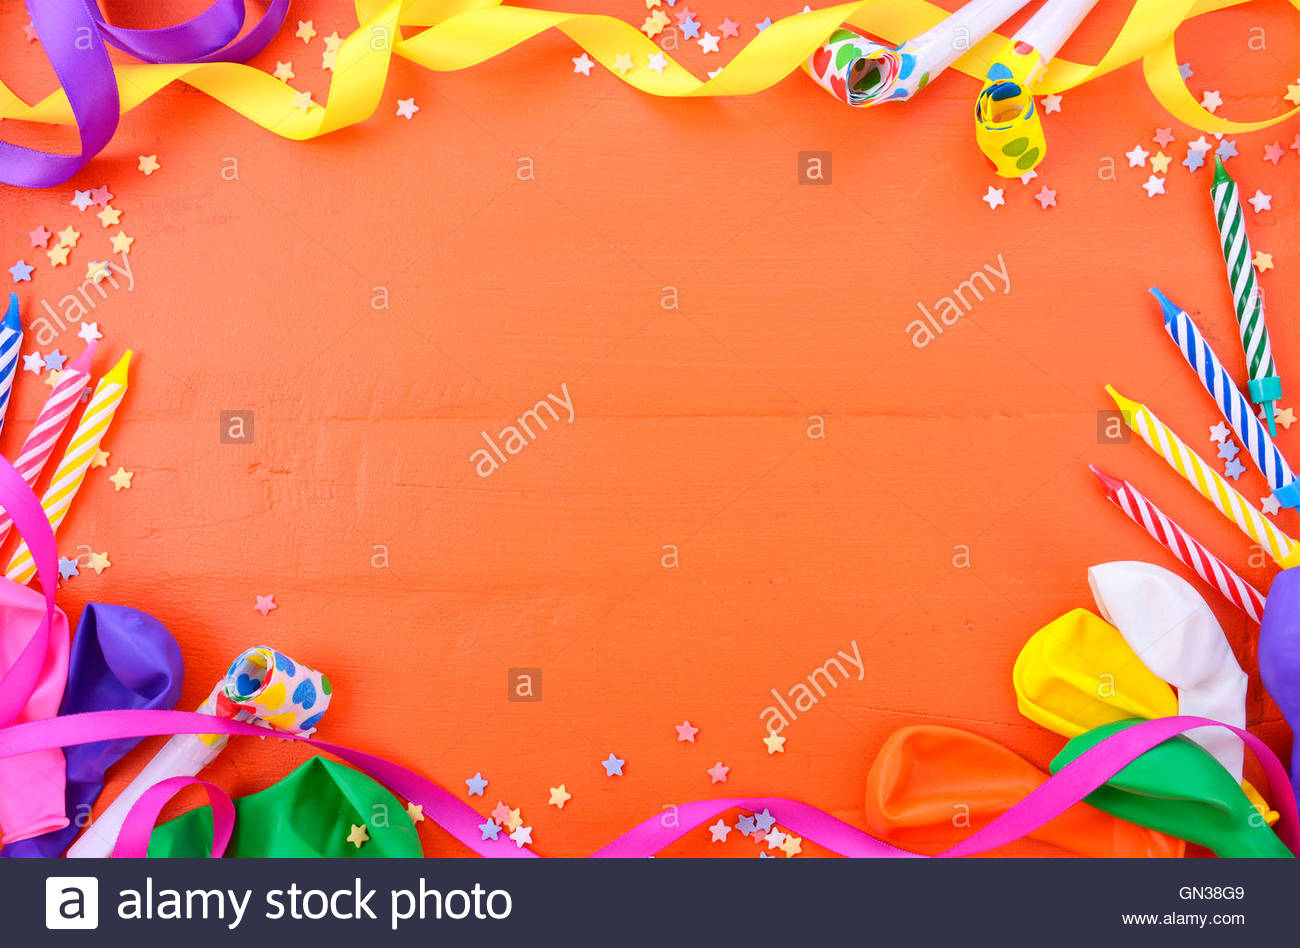 birthday borders and backgrounds ; happy-birthday-background-with-decorated-borders-with-party-decorations-GN38G9